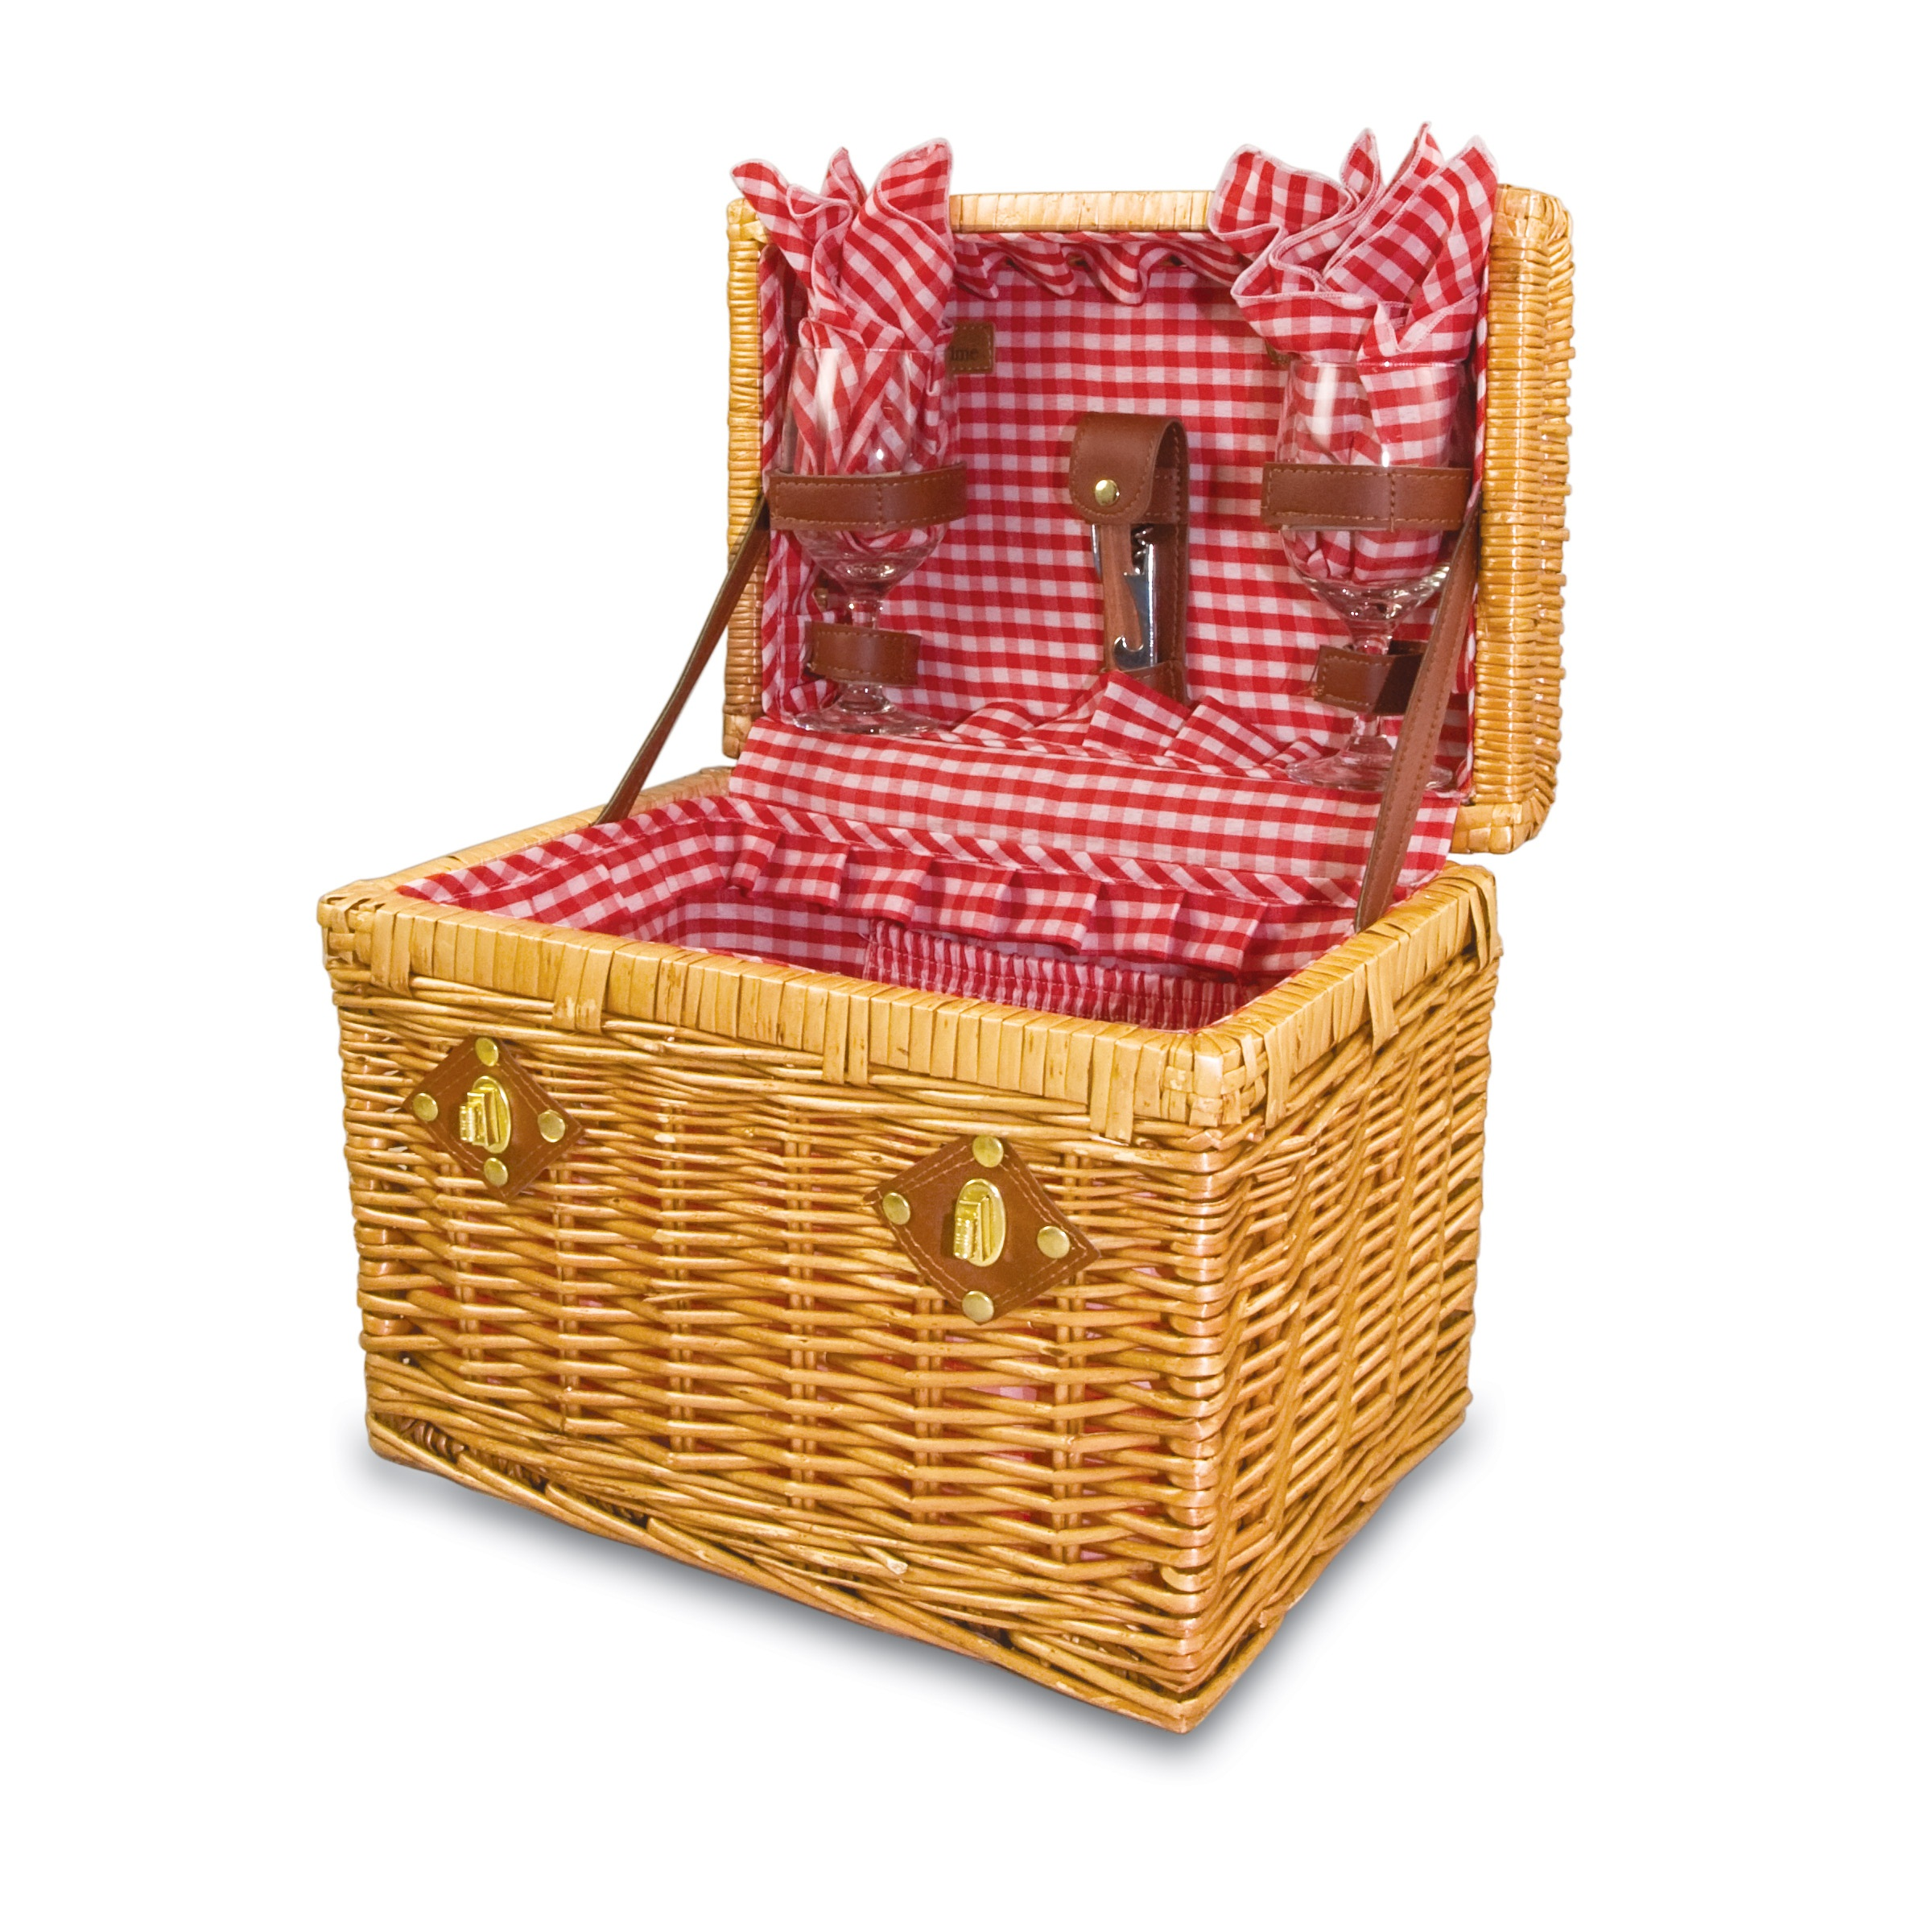 Picnic Basket Items : Picnic time chardonnay quot willow basket w wine service for